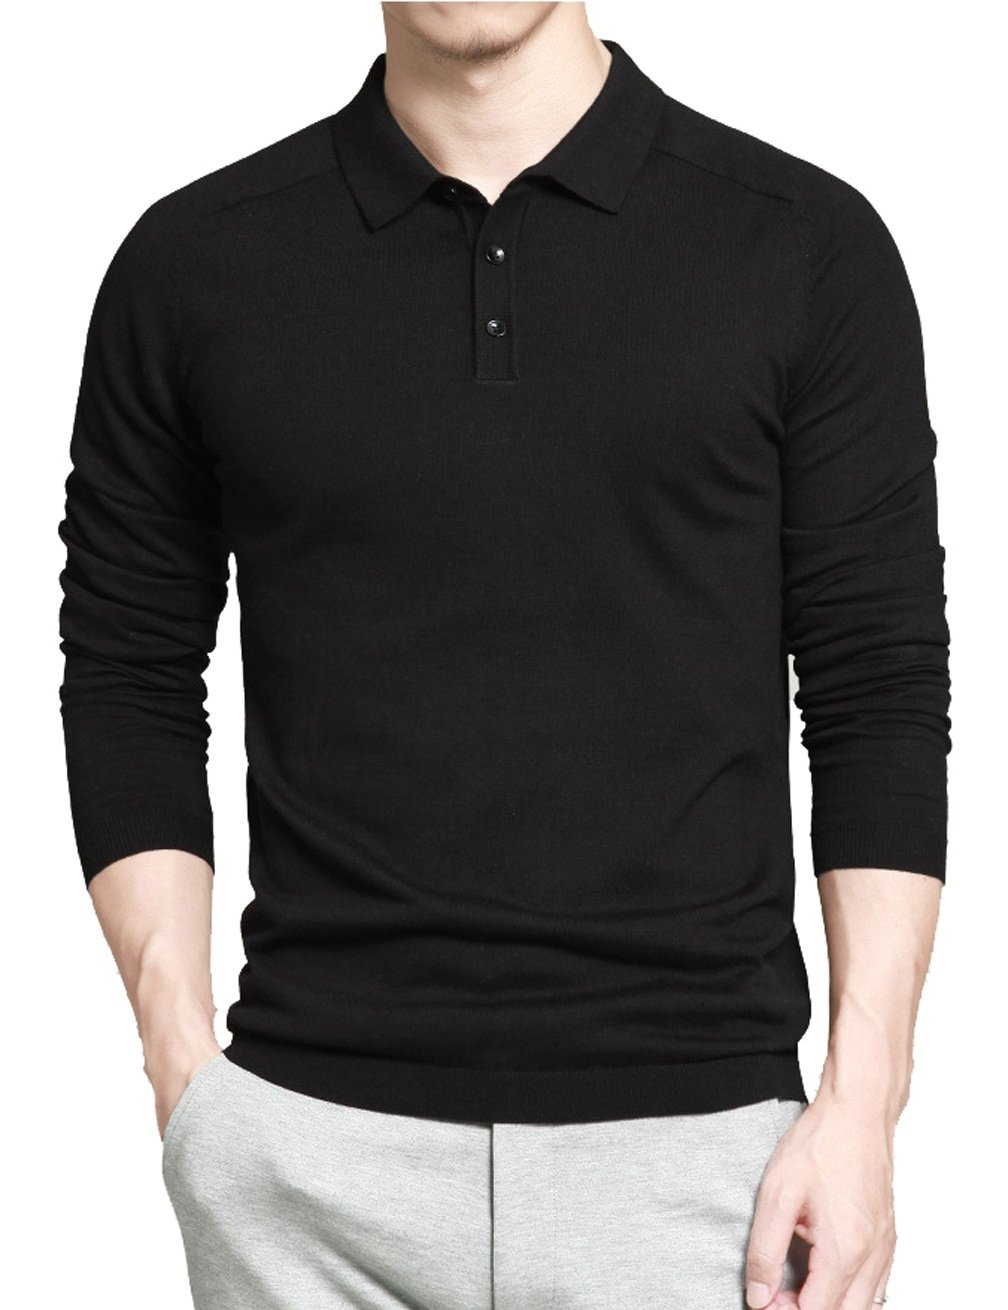 Gameyly Men's Long Sleeves Pullover Sweater-Knit Polo L Black